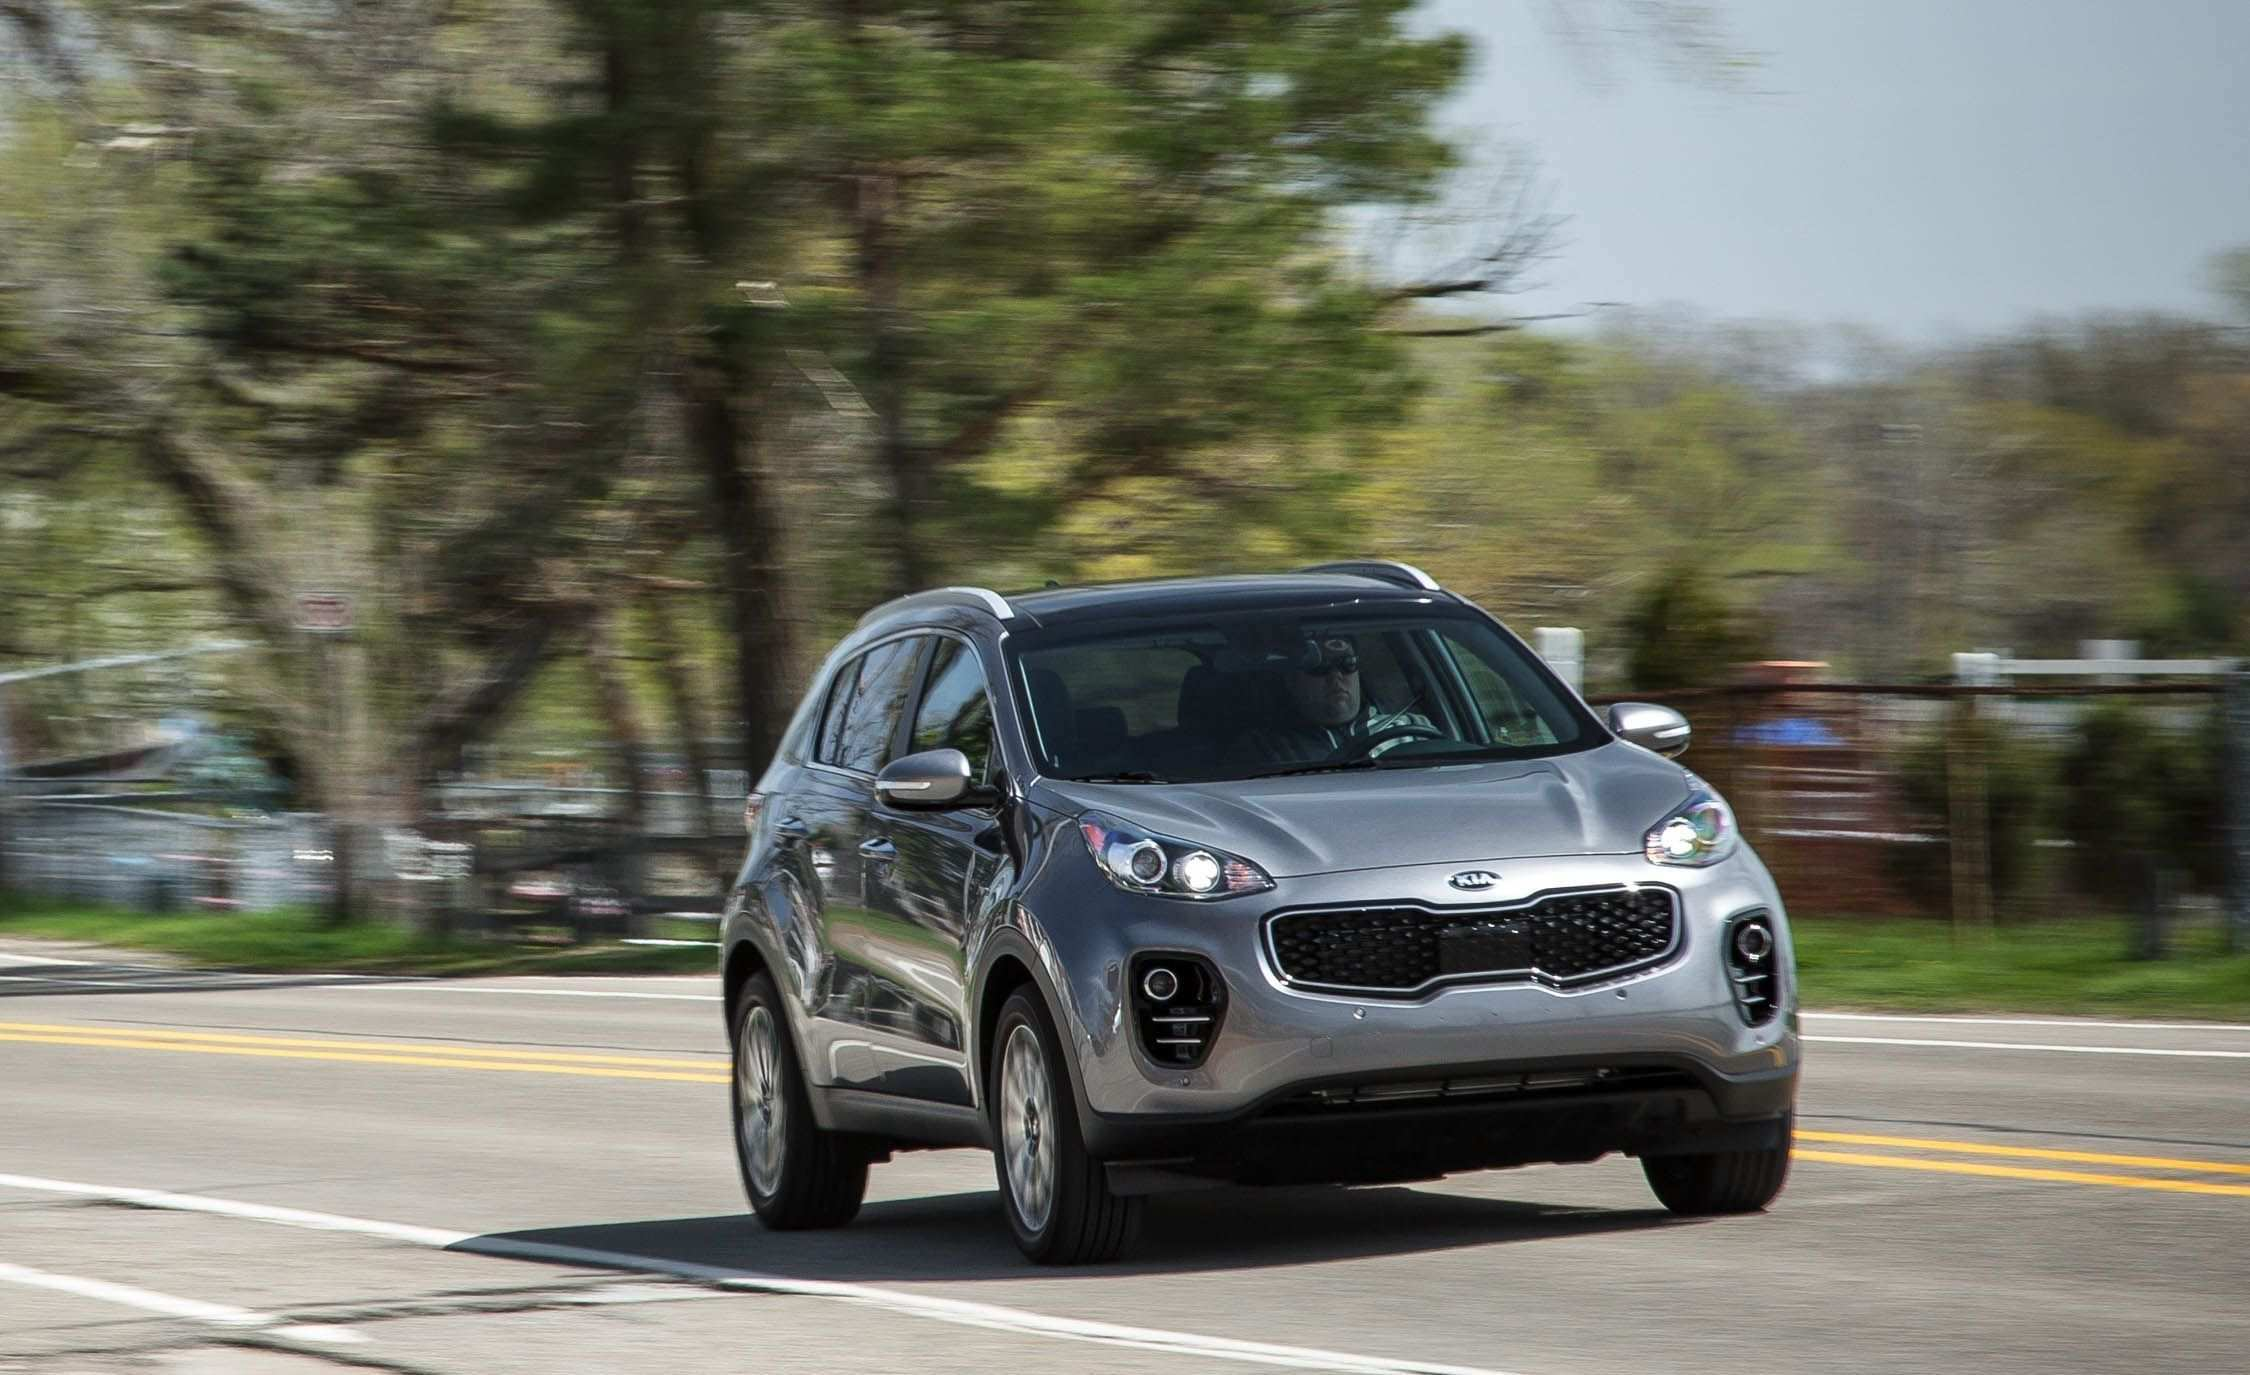 84 The The Kia Sportage 2019 Dimensions Release Date Price And Review Speed Test by The Kia Sportage 2019 Dimensions Release Date Price And Review